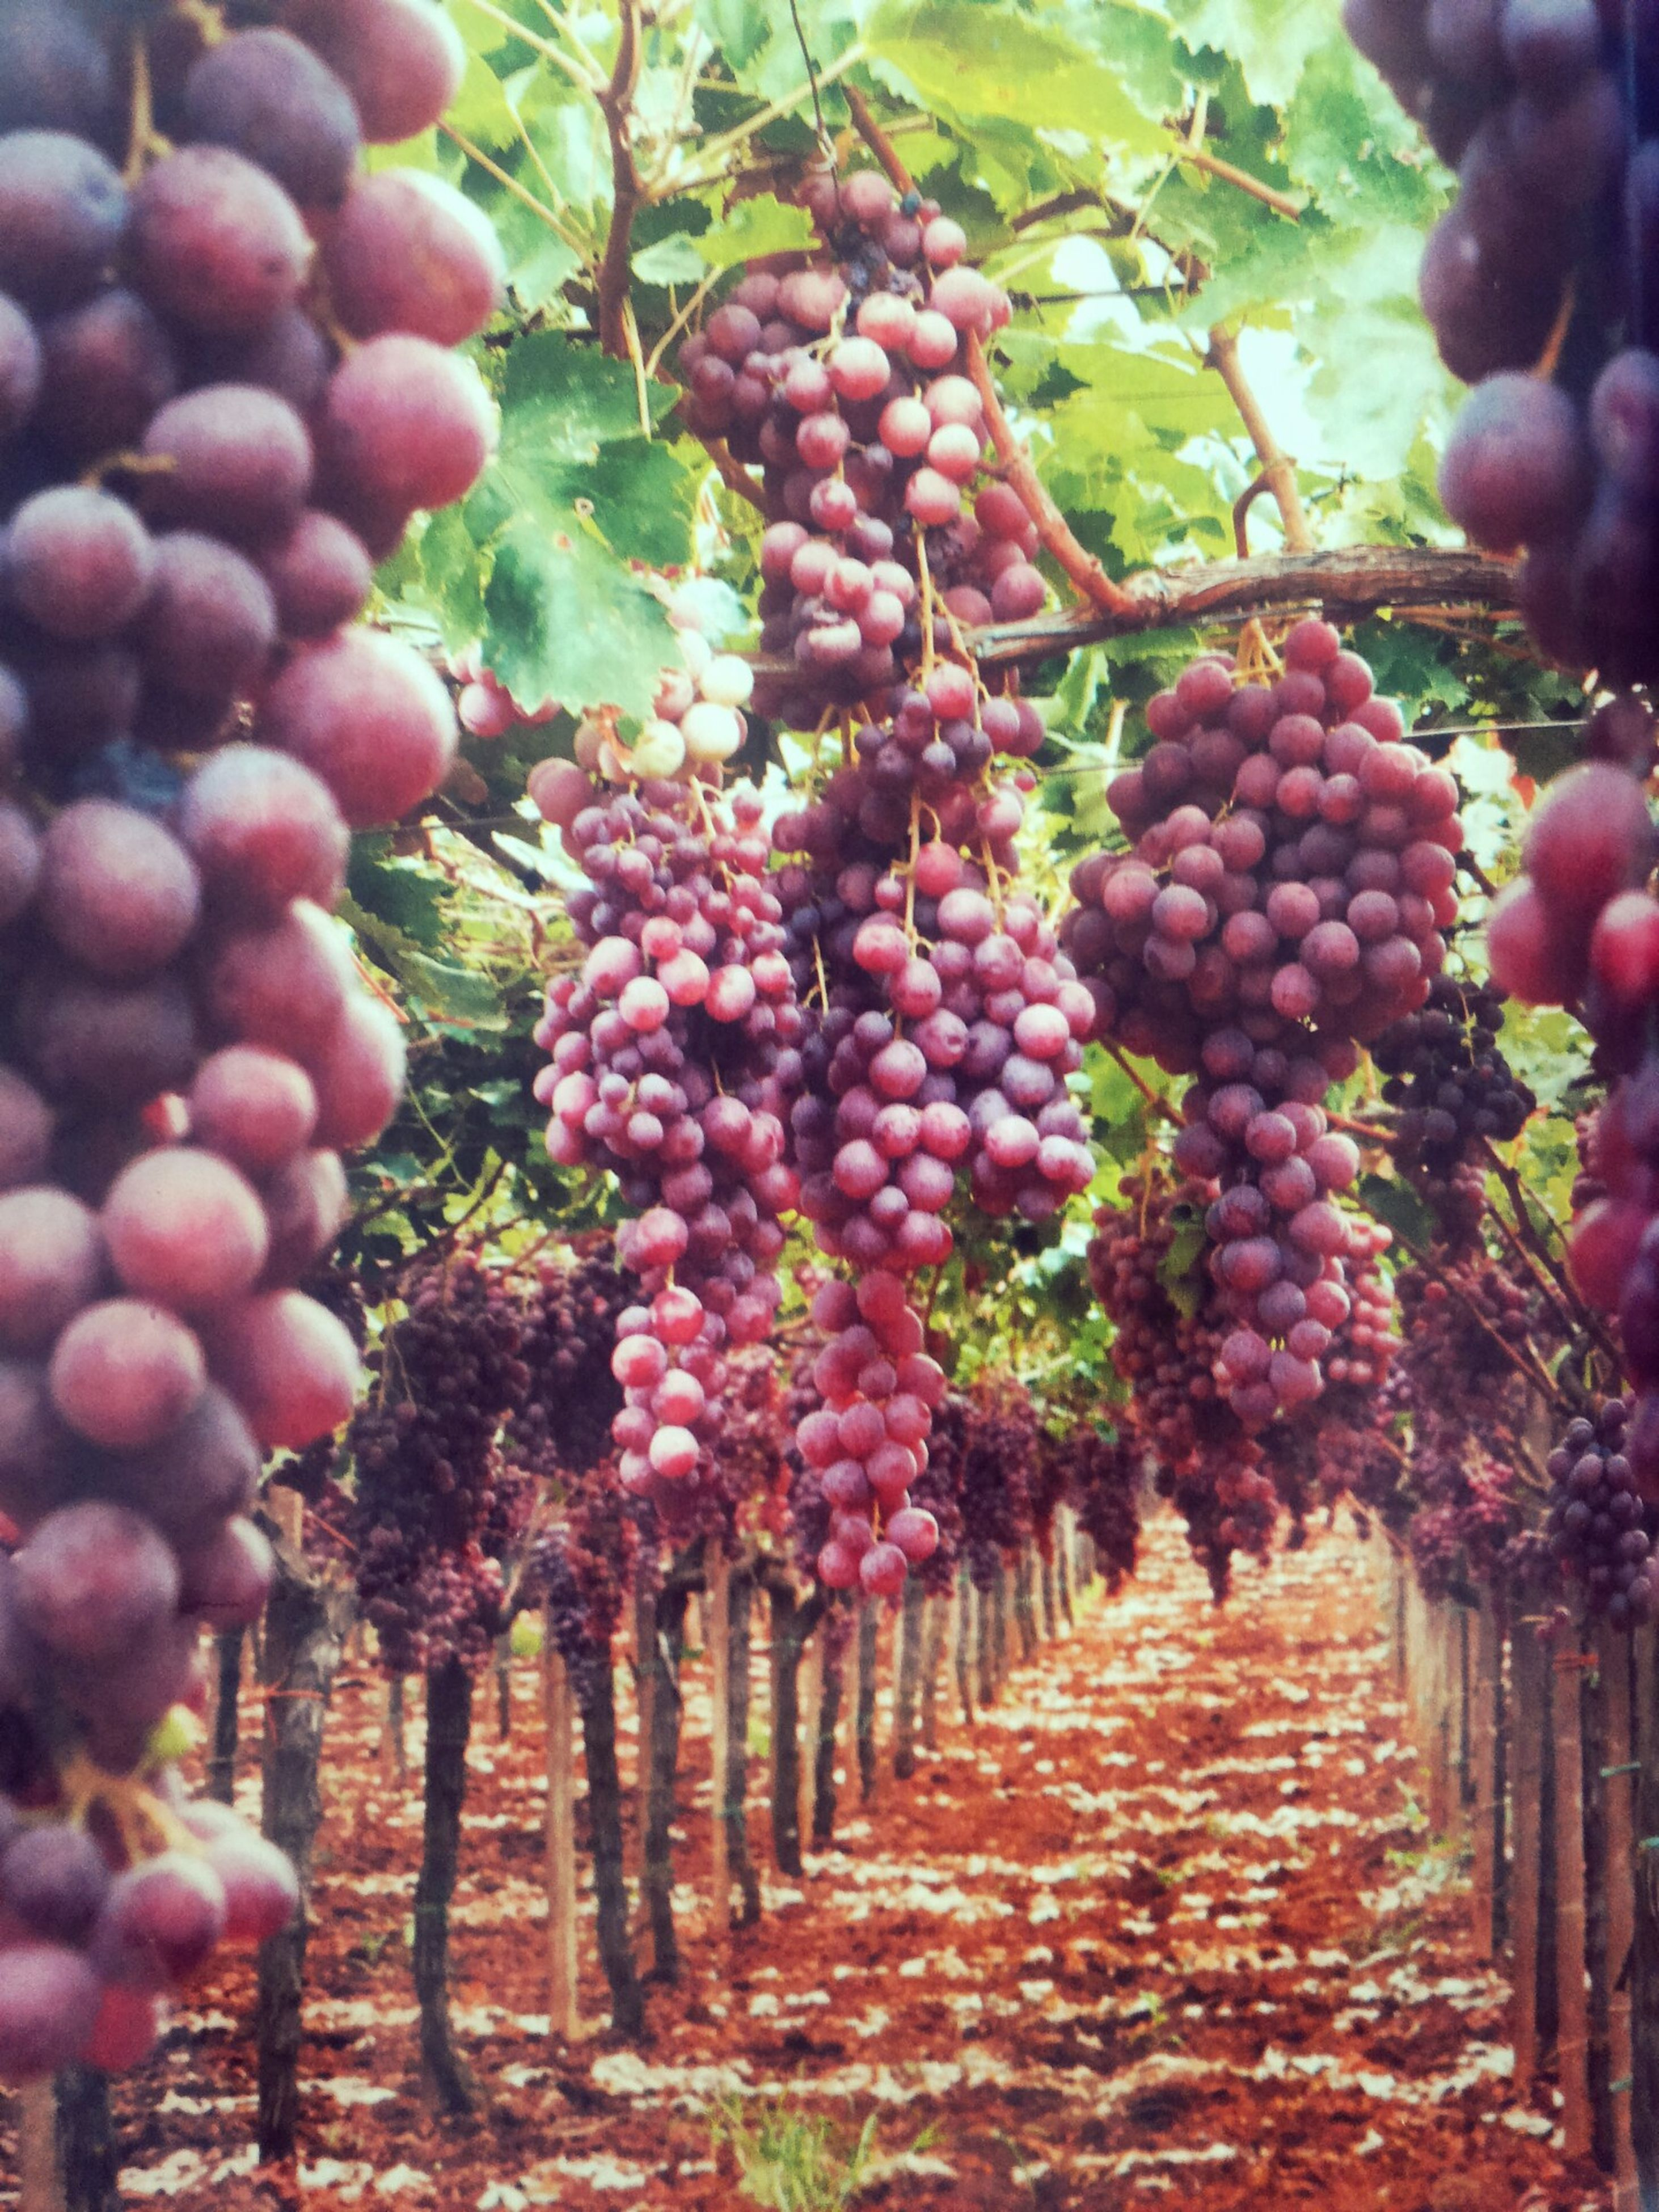 fruit, food and drink, freshness, healthy eating, tree, food, vineyard, growth, abundance, hanging, agriculture, ripe, large group of objects, bunch, leaf, branch, grape, vine, red, outdoors